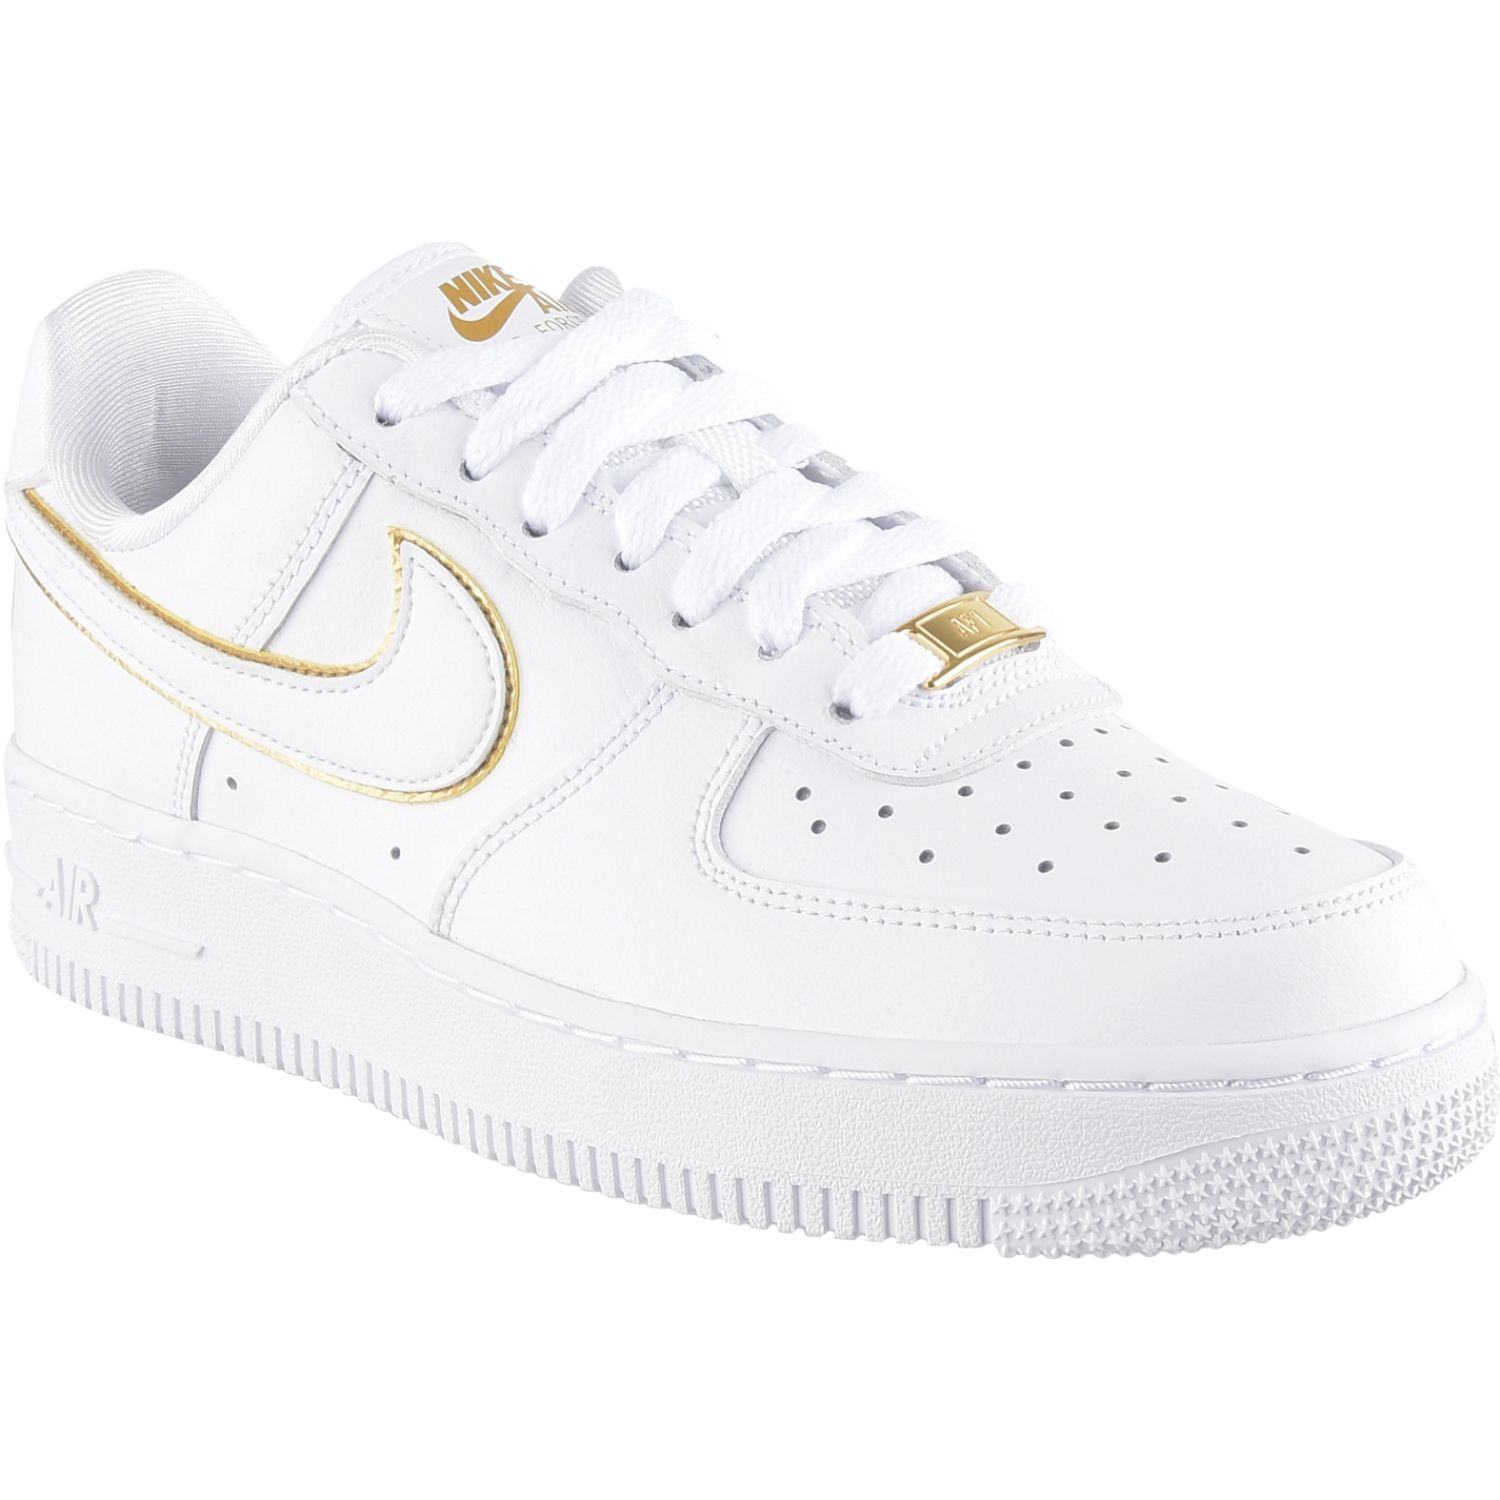 sexual Costoso patata  Nike WMNS AIR FORCE 1 '07 ESS Blanco Walking | platanitos.com